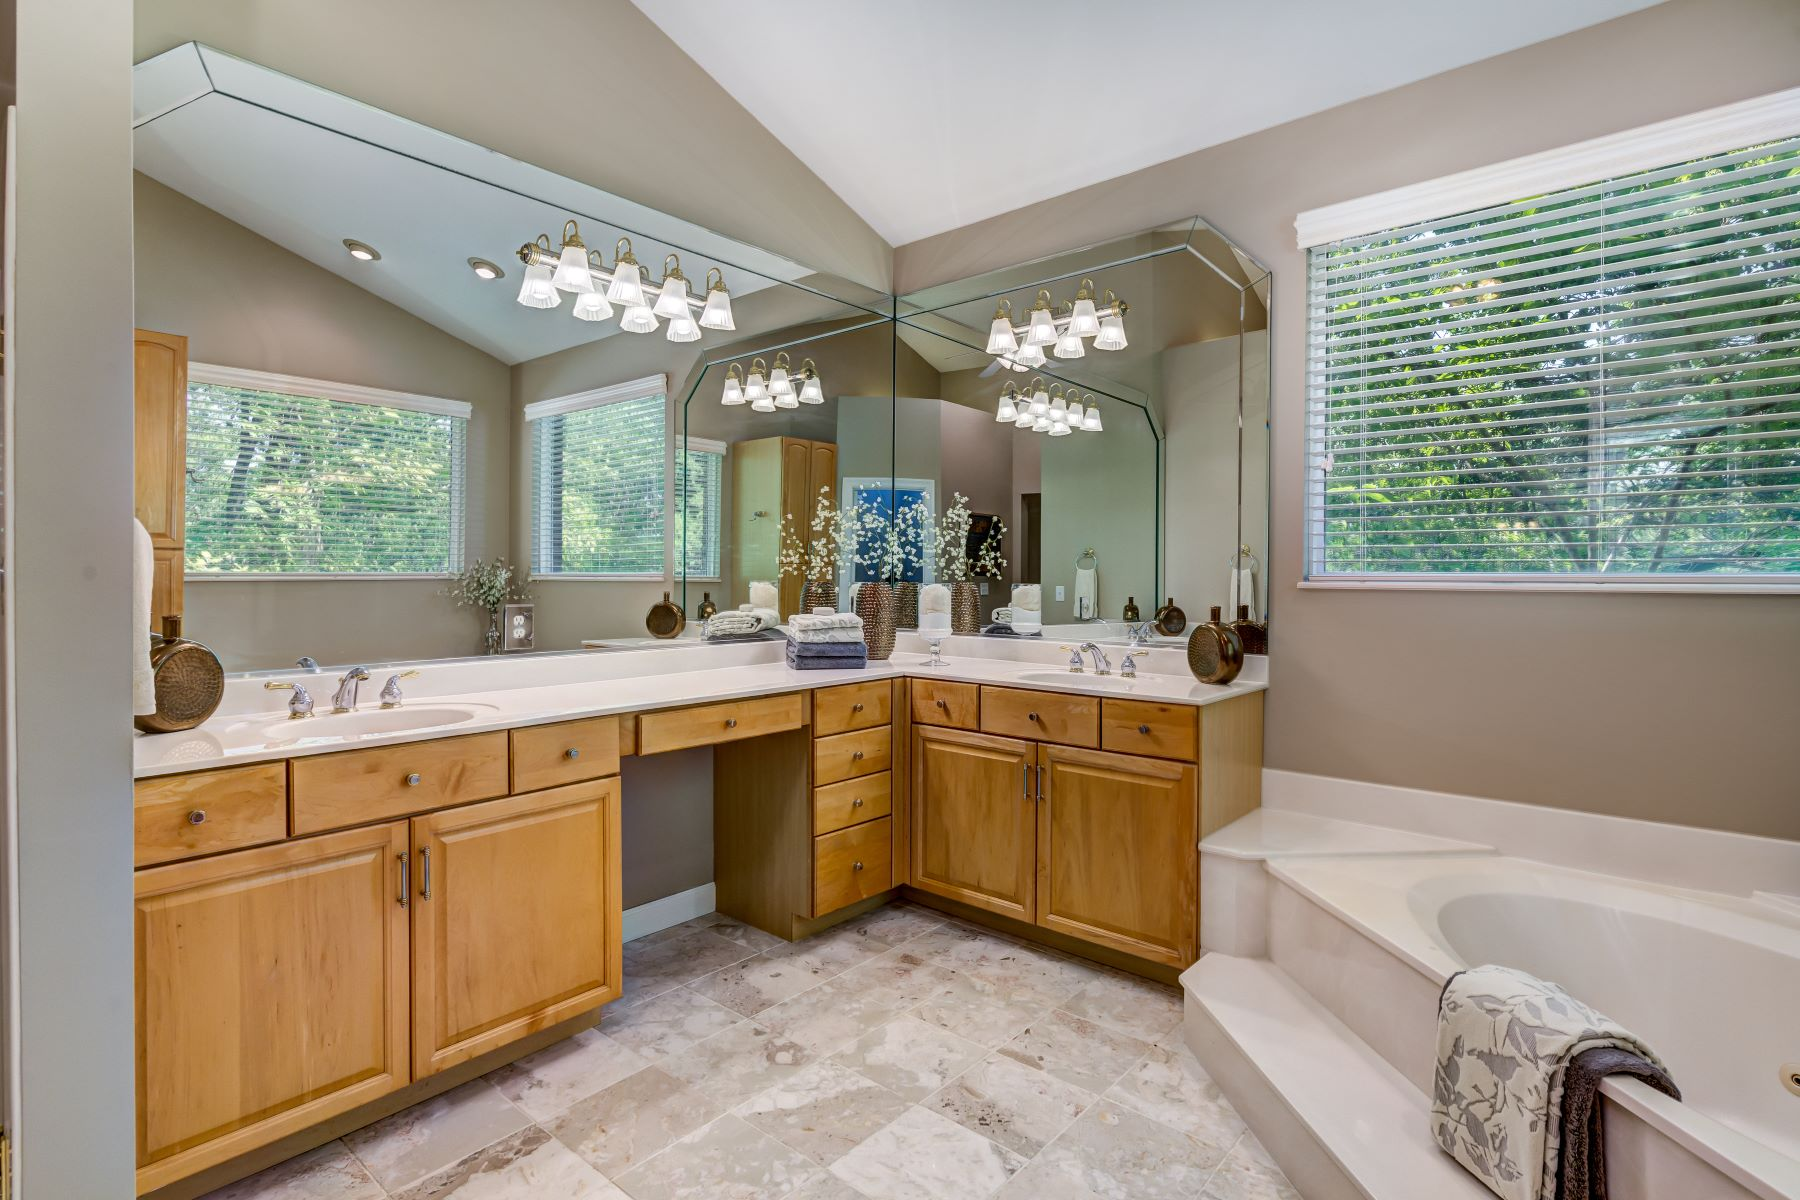 Additional photo for property listing at Stylish Ballwin Home With Privacy 756 Old Kiefer Creek Road Ballwin, Missouri 63021 United States